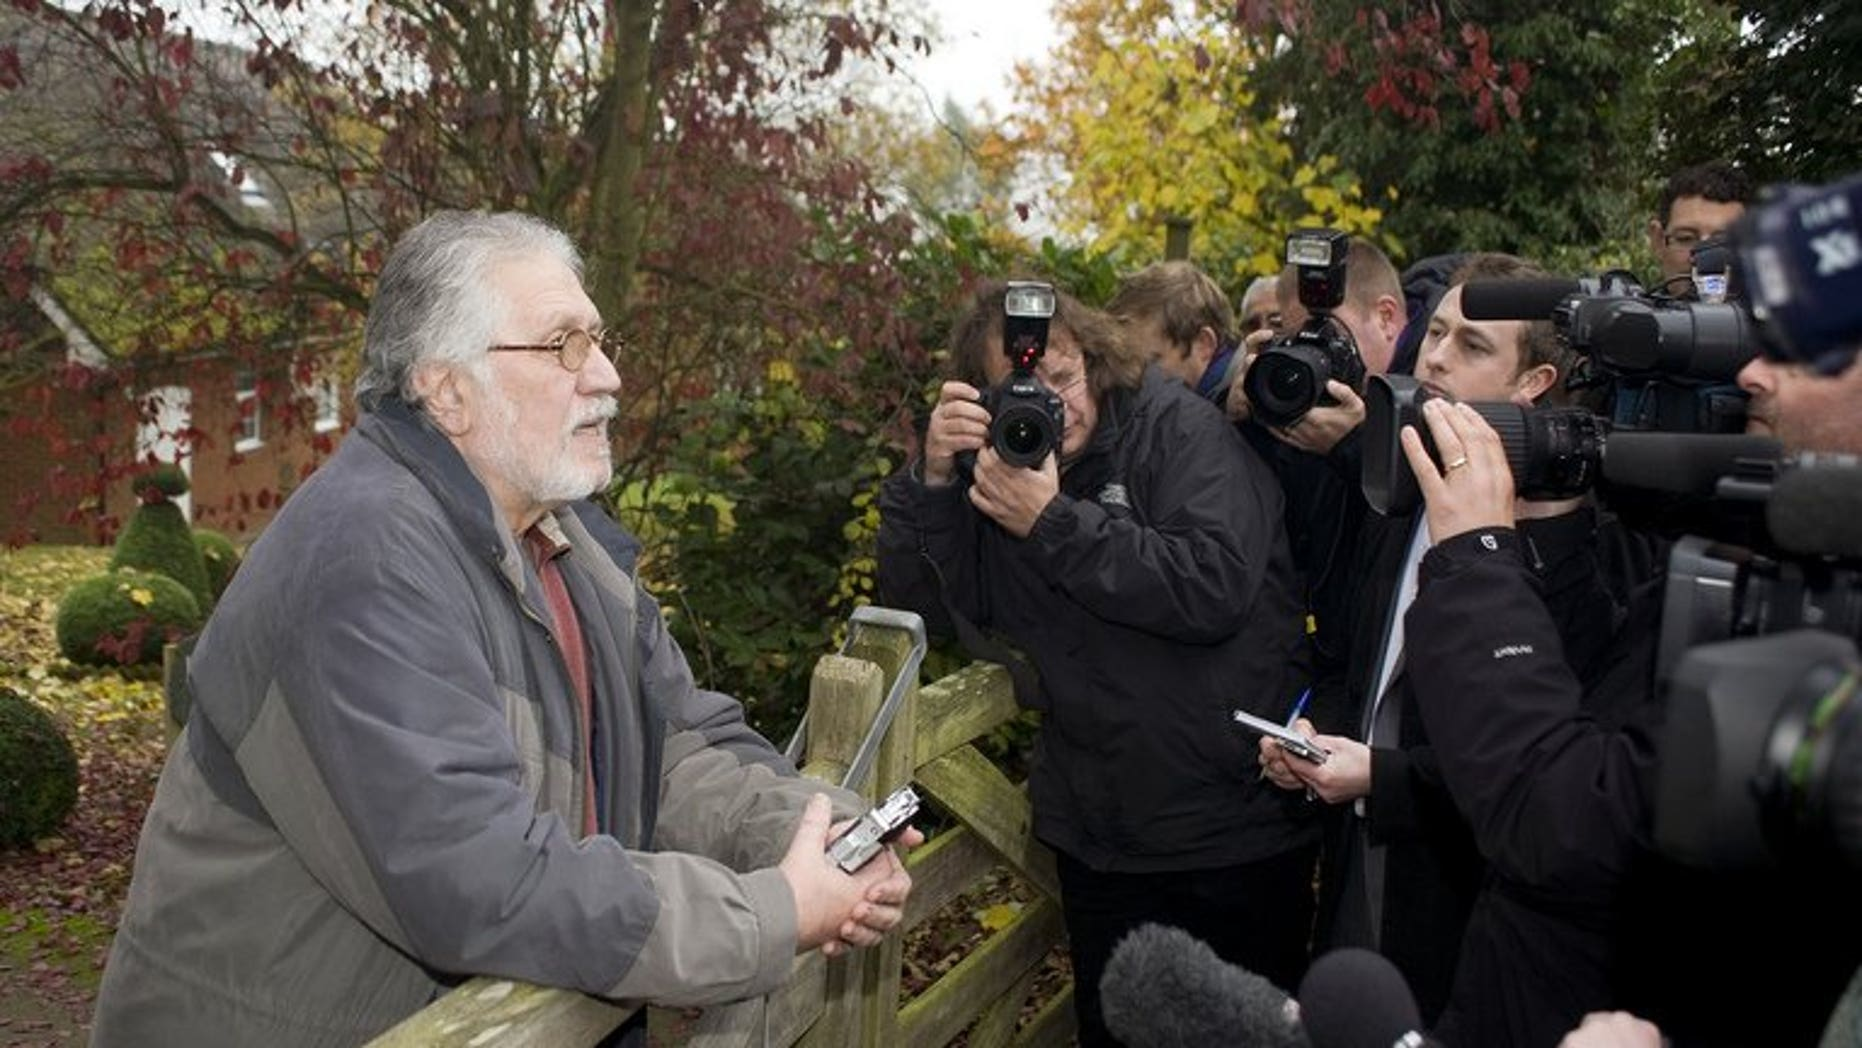 British radio and television presenter Dave Lee Travis (L) speaks to the media outside at his home in Buckinghamshire, England, on November 16, 2012. Travis was charged on Thursday with 11 counts of indecent assault of women and girls as young as 15 and one count of sexual assault, prosecutors said.